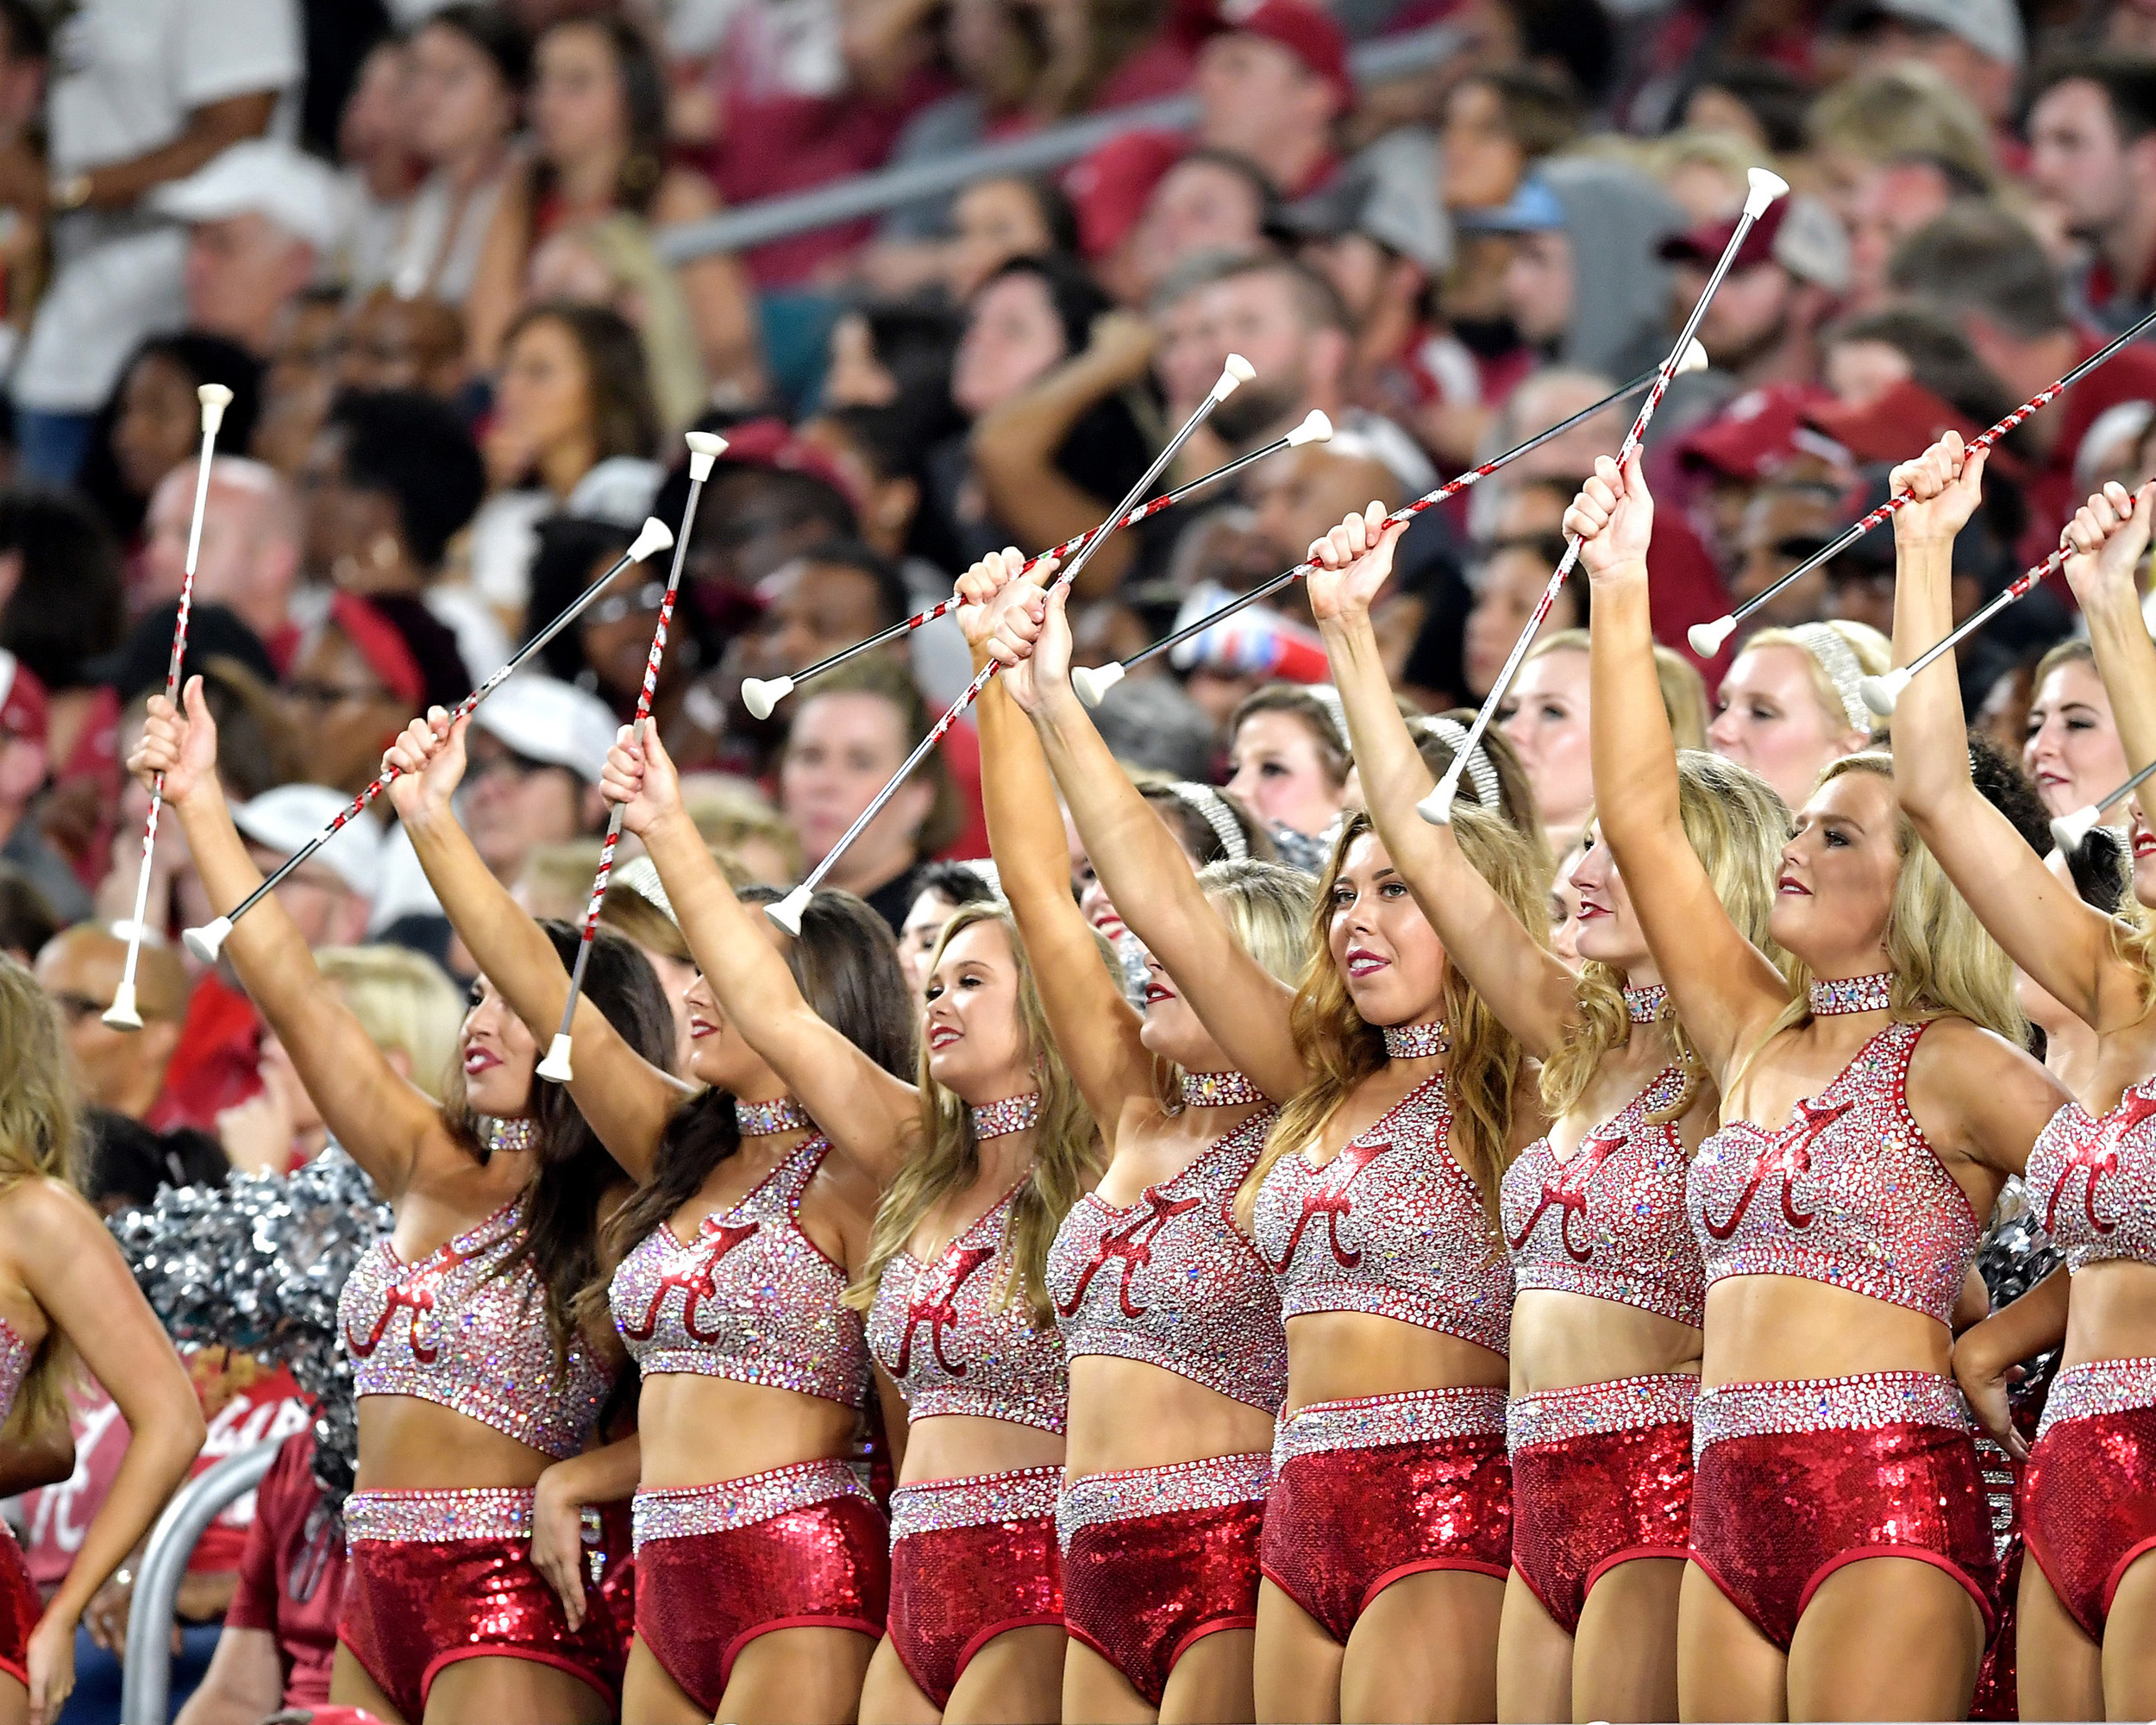 Alabama Crimson Tide Crimsonettes in the stands during the second half of the Capital One Orange Bowl, featuring Alabama and the Oklahoma Sooners, at Hard Rock Stadium in Miami Gardens, Fla., Saturday, Dec. 29, 2018. Alabama wins 45-34. (Photo by Lee Walls)